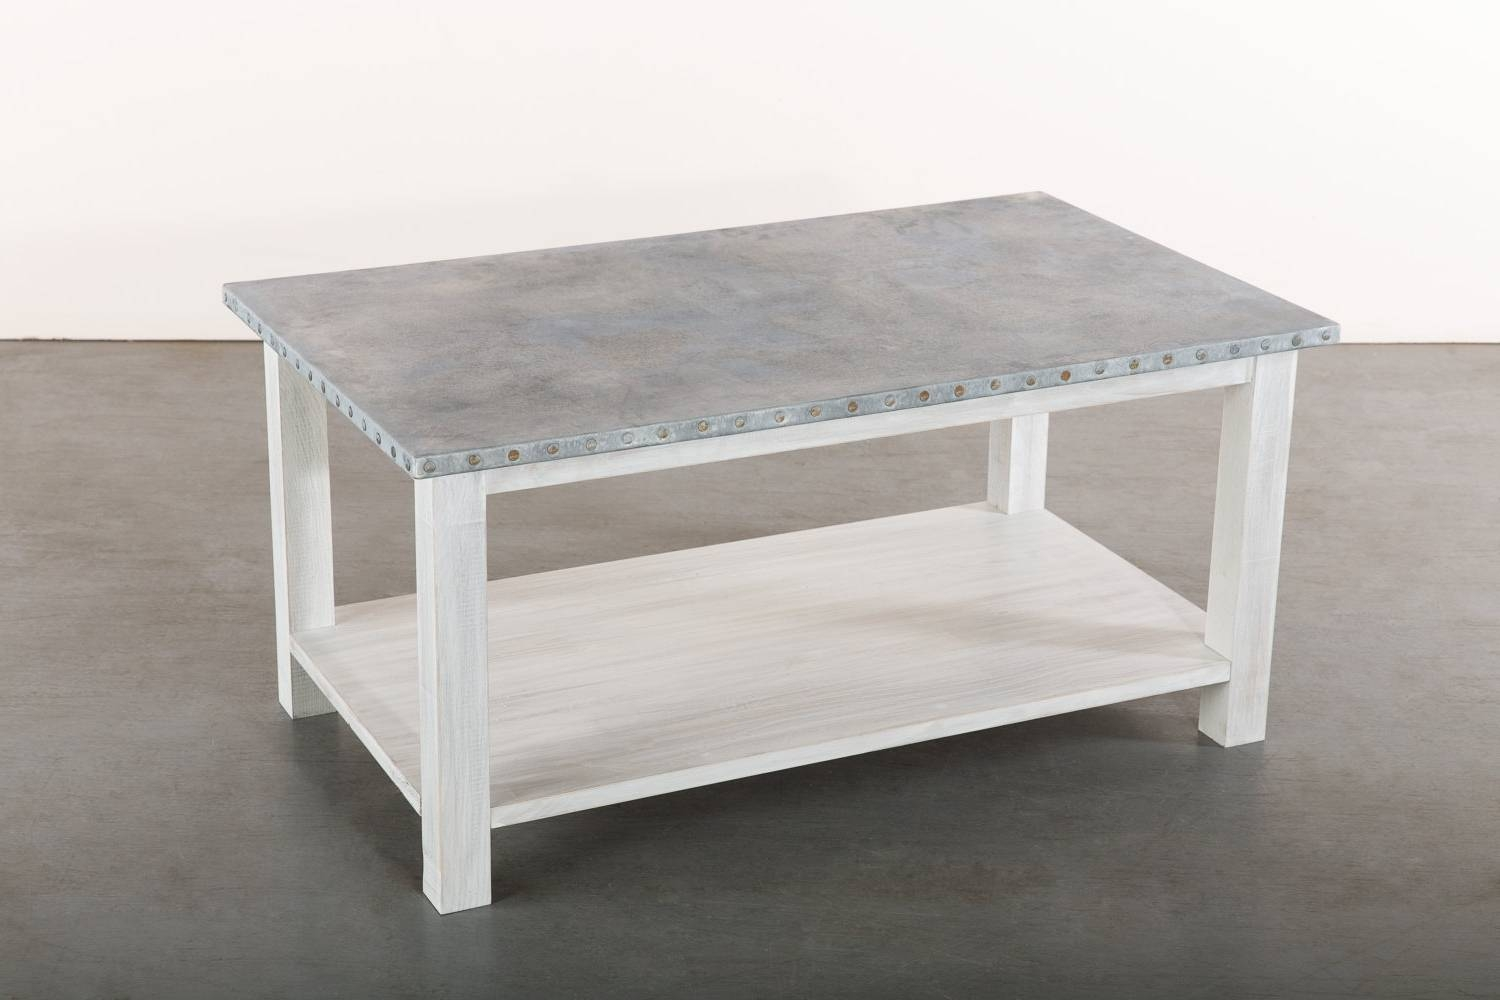 Coffee Table : Grey Wash Coffee Table Inside Glorious Gray Coffee in Gray Wash Coffee Tables (Image 11 of 30)